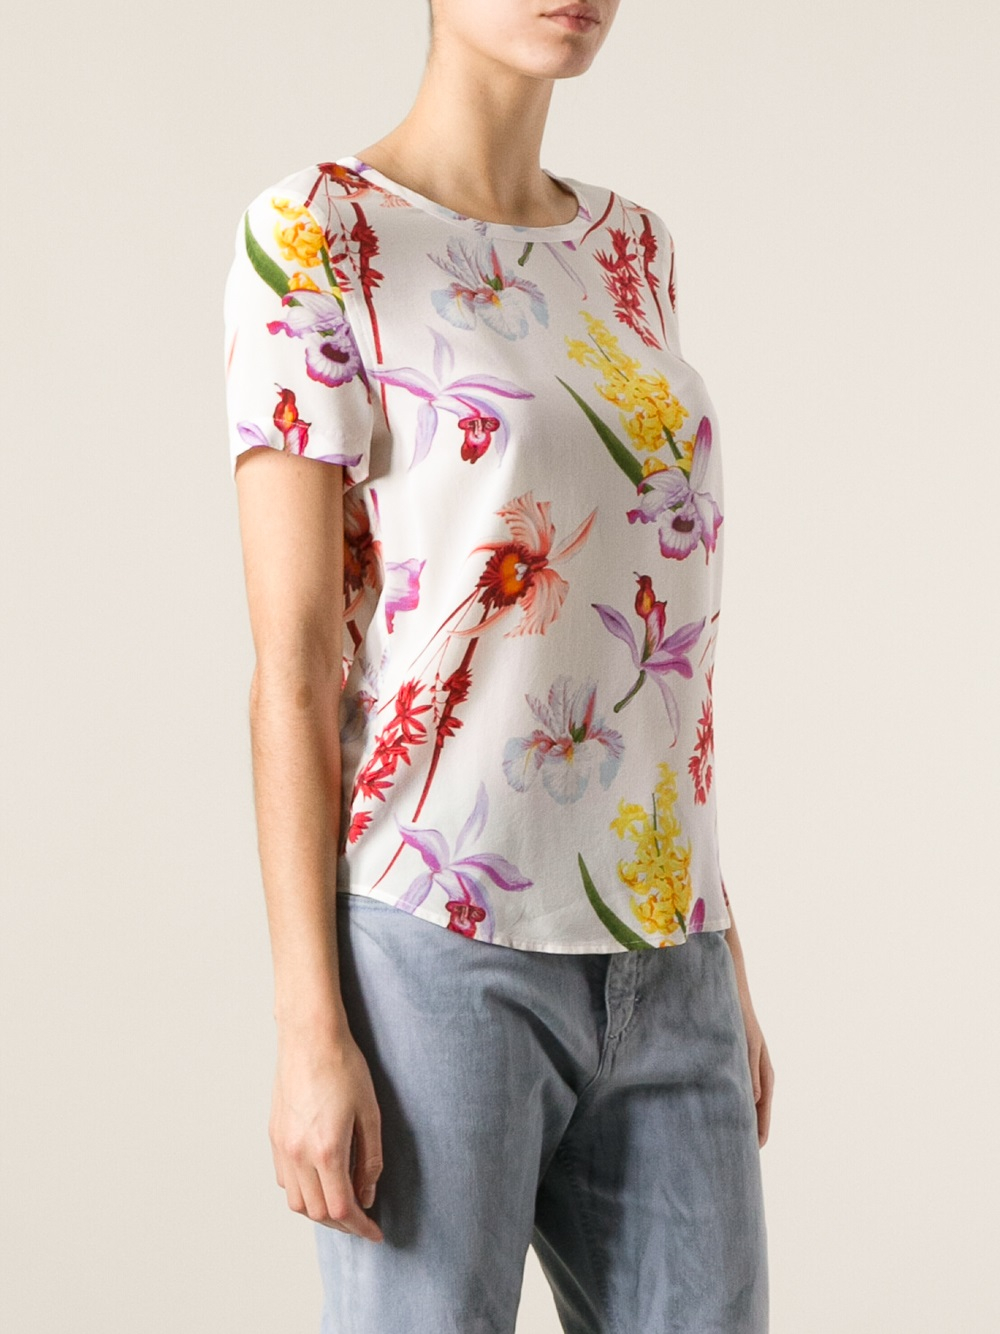 Lyst equipment floral print t shirt in white for T shirt printing supplies wholesale